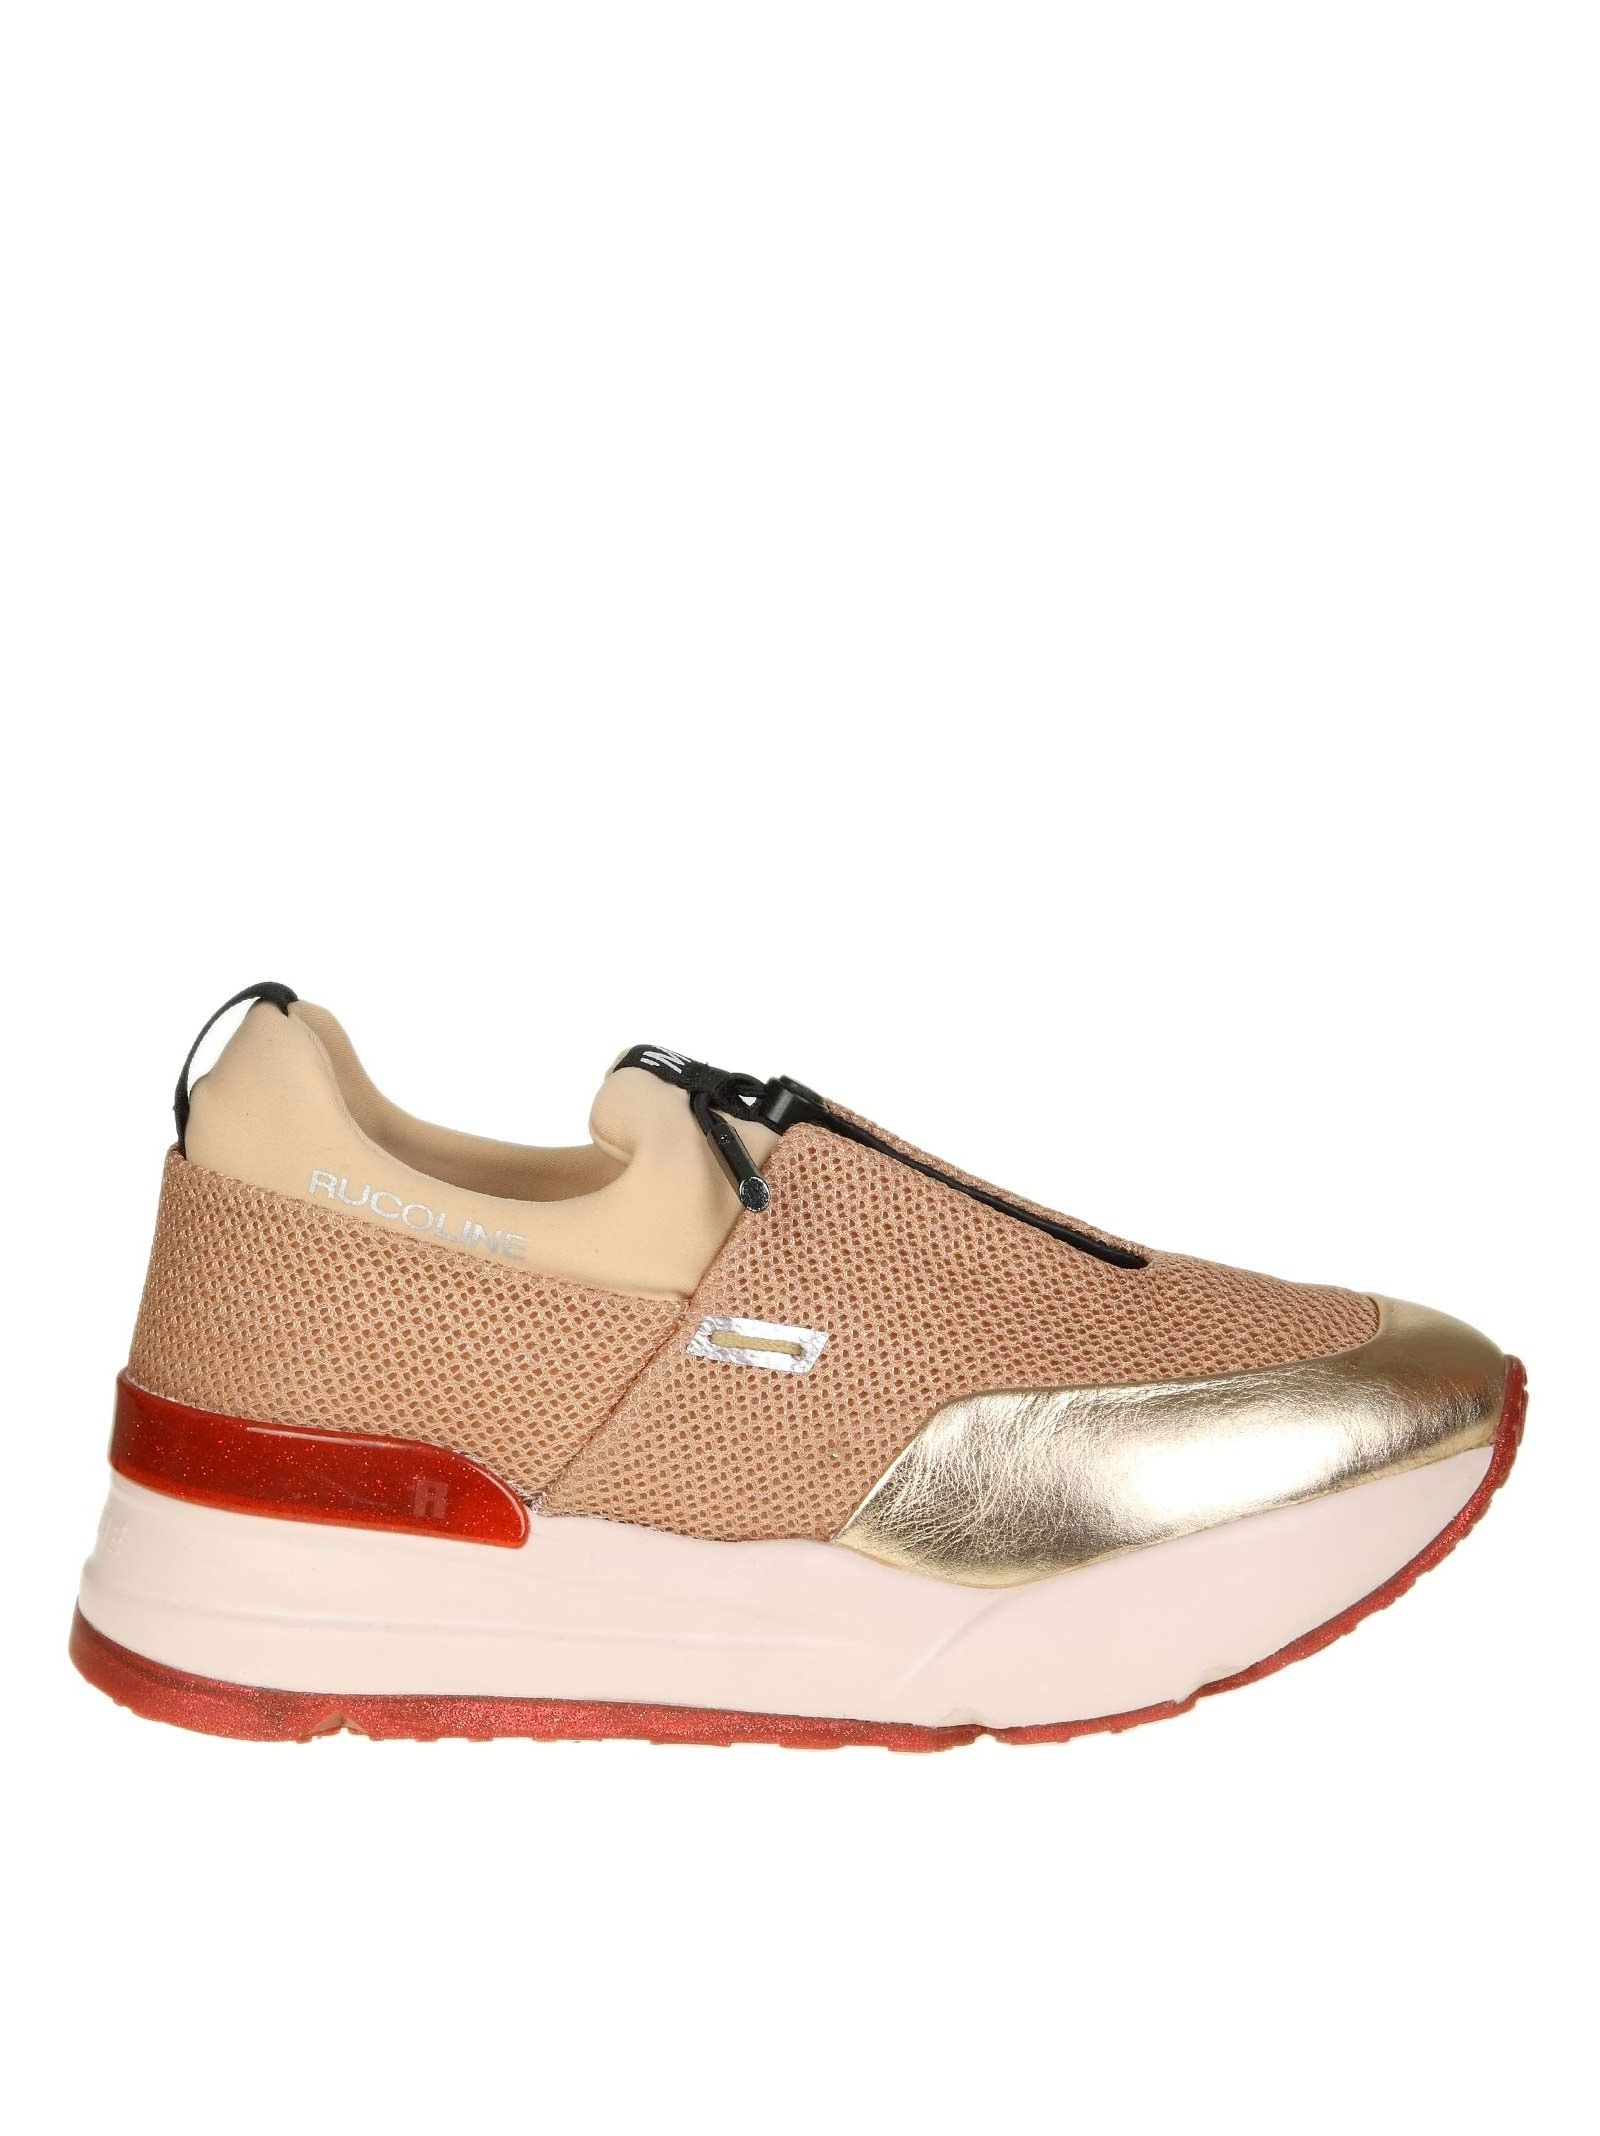 "Ruco Line RUCOLINE SNEAKERS ""ESSENTIEL"" NET AND SKIN PINK COLOR"